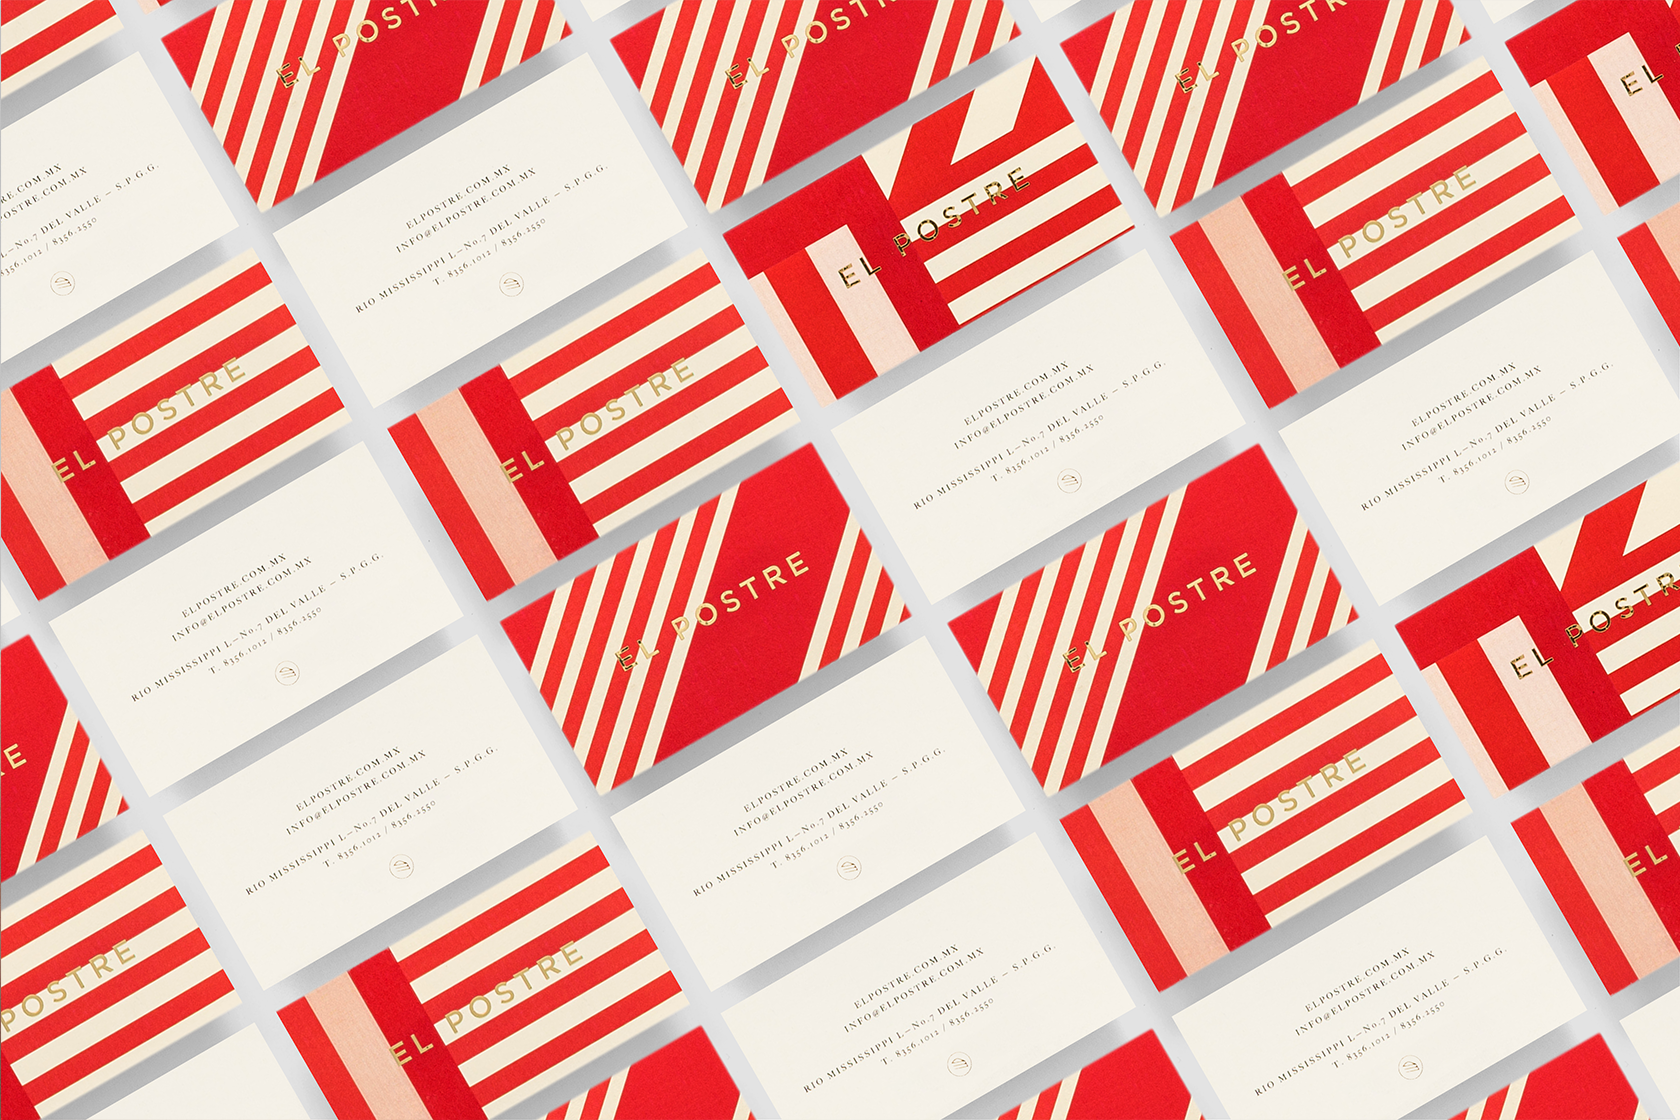 50 business cards two on behance bzns cds pinterest 50 business cards two on behance magicingreecefo Gallery